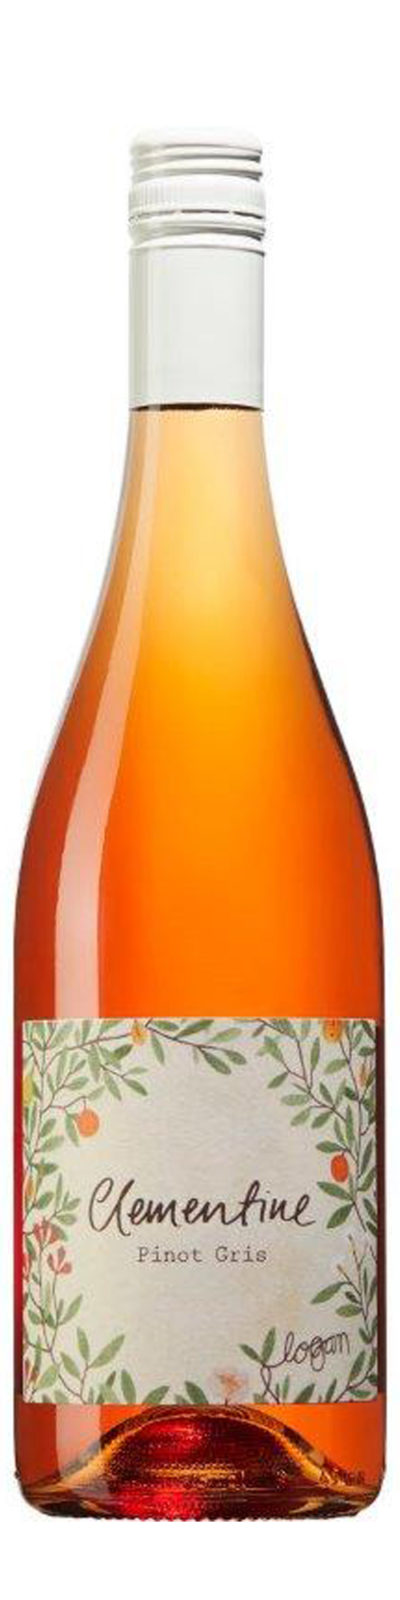 Clementine Pinot Gris